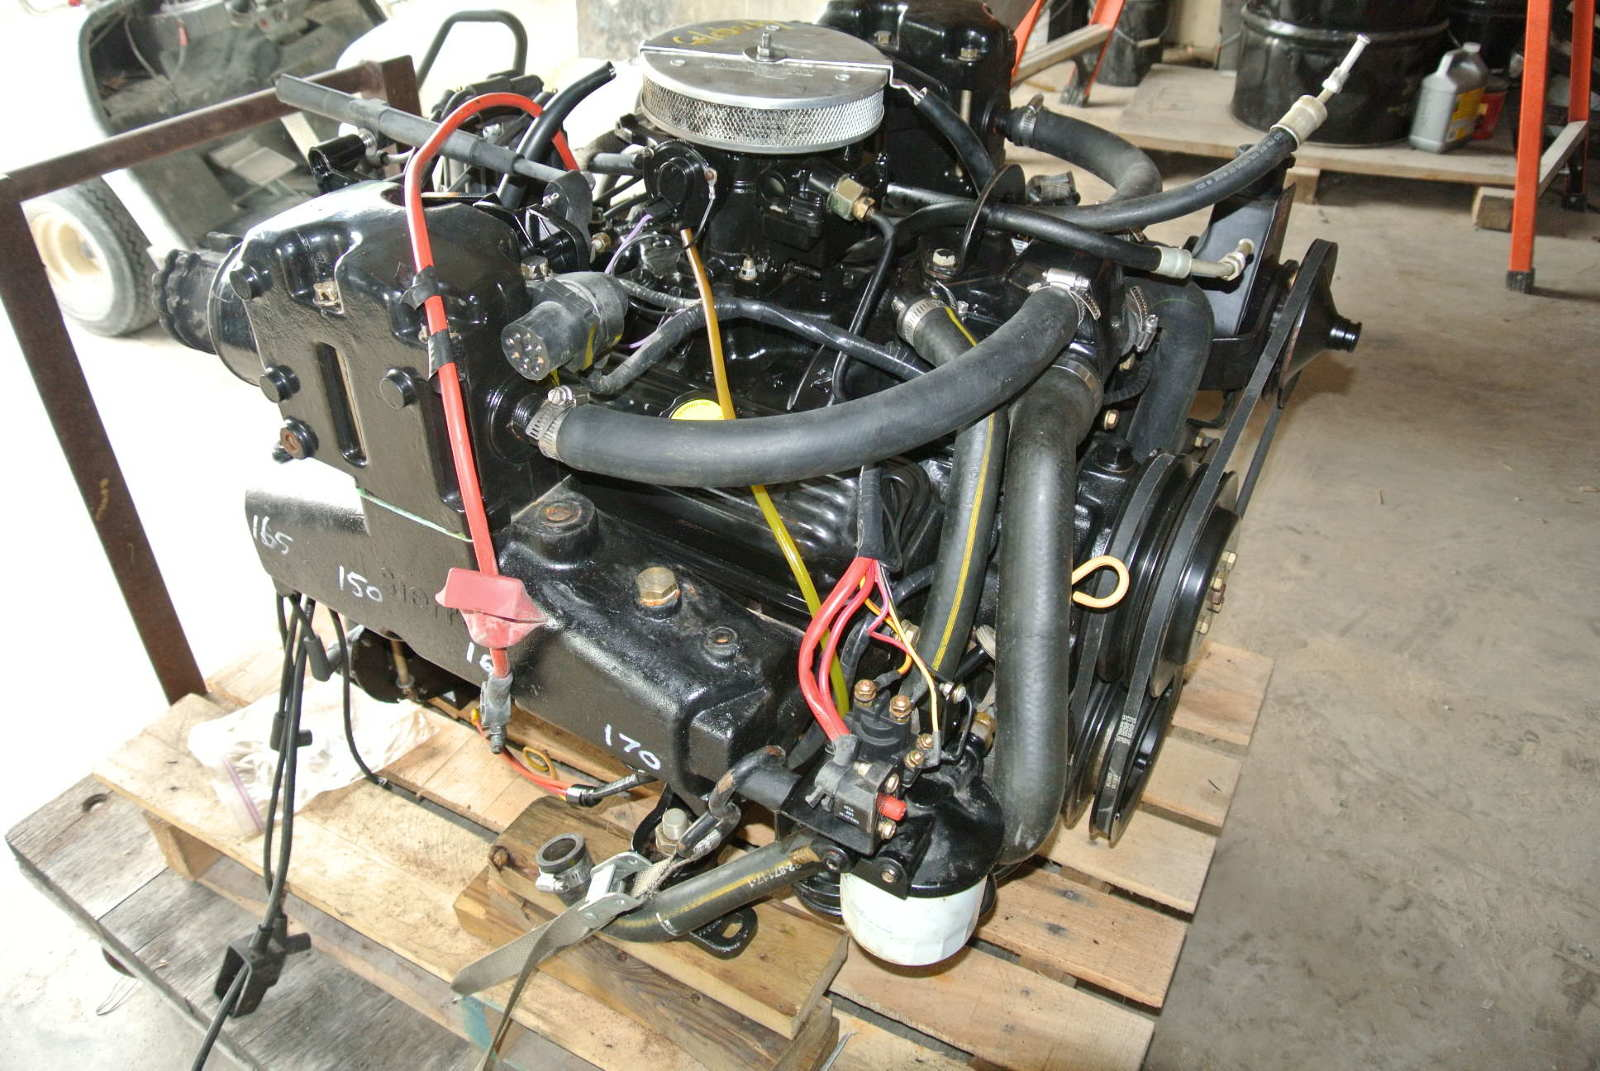 5364 mercruiser 50 engine v8 chevy 305 motor complete plug n go mercruiser 5 0 engine v8 chevy 305 motor complete plug n go Mercruiser 3.7L 1990 Wiring Diagram at mifinder.co